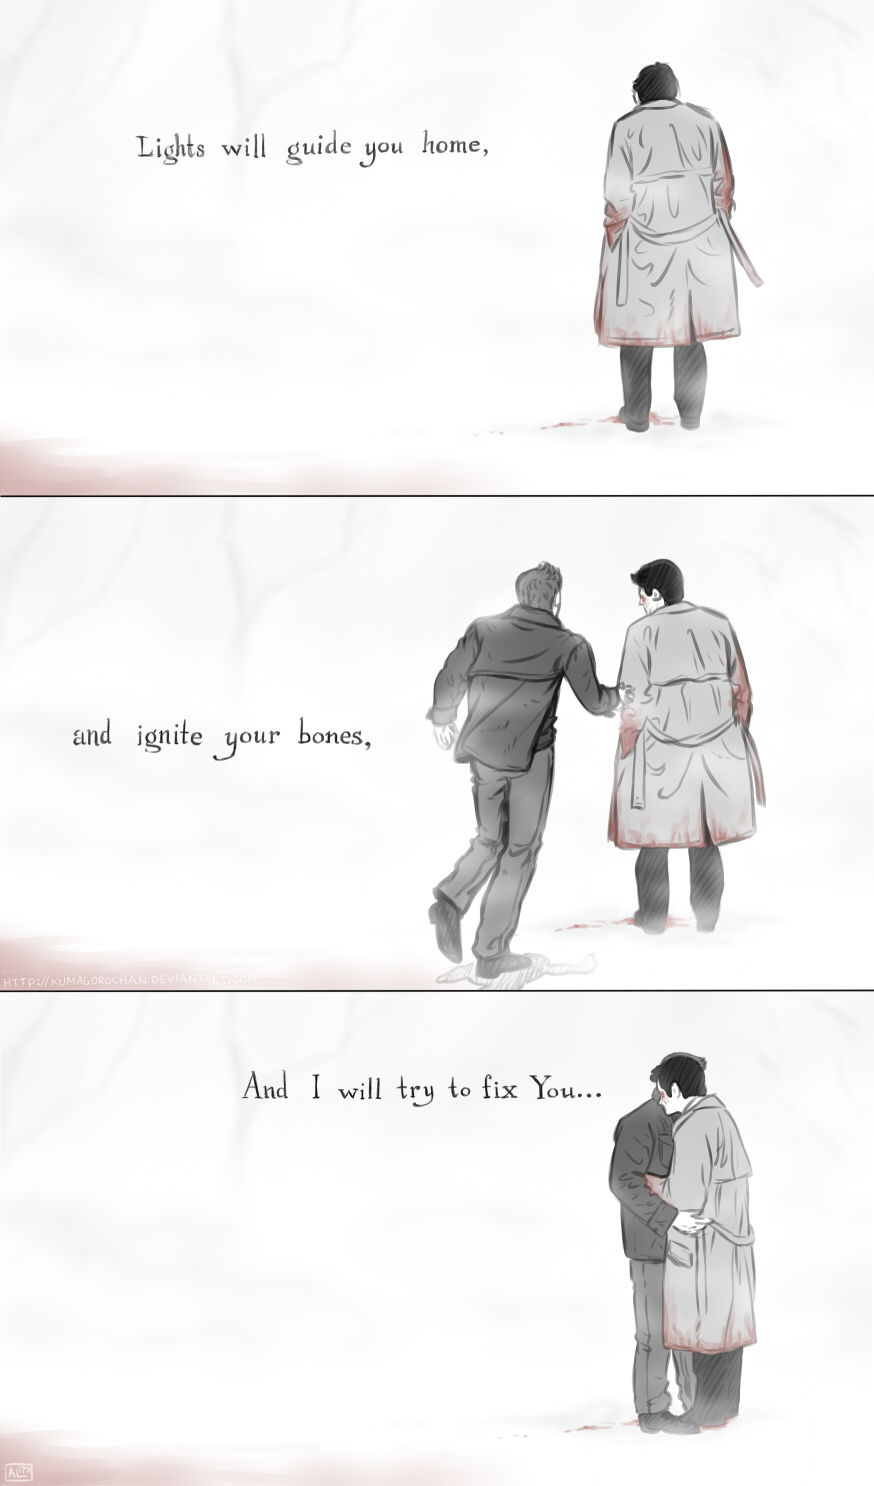 Supernatural - Fix You by Kumagorochan